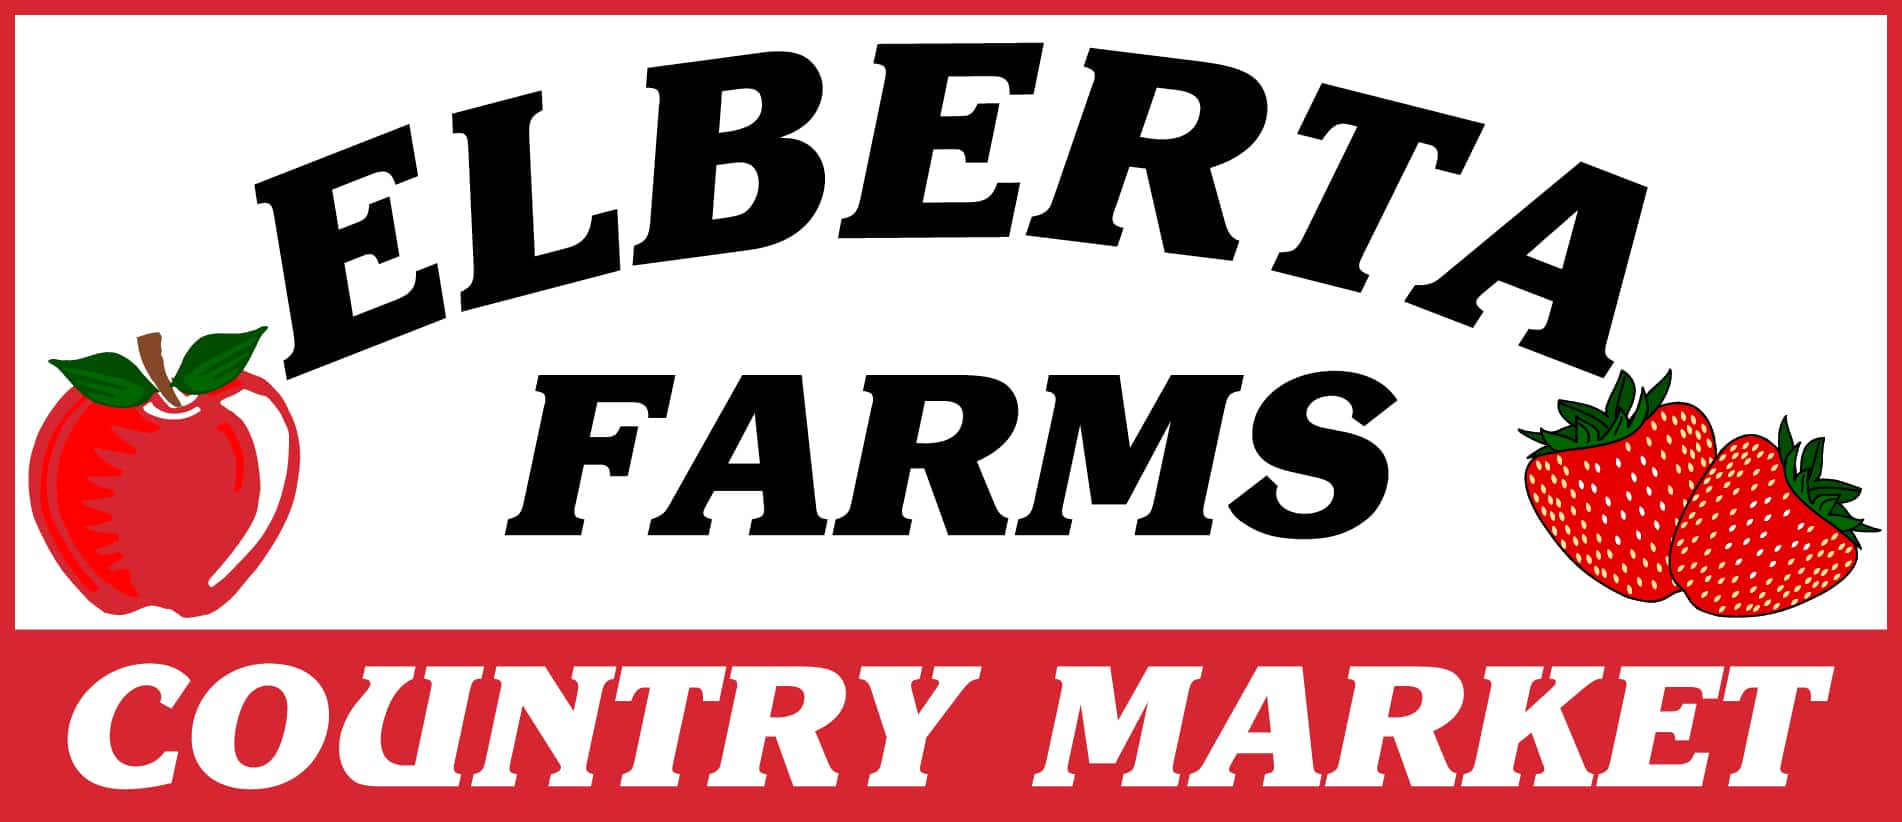 Elberta Farms Country Market